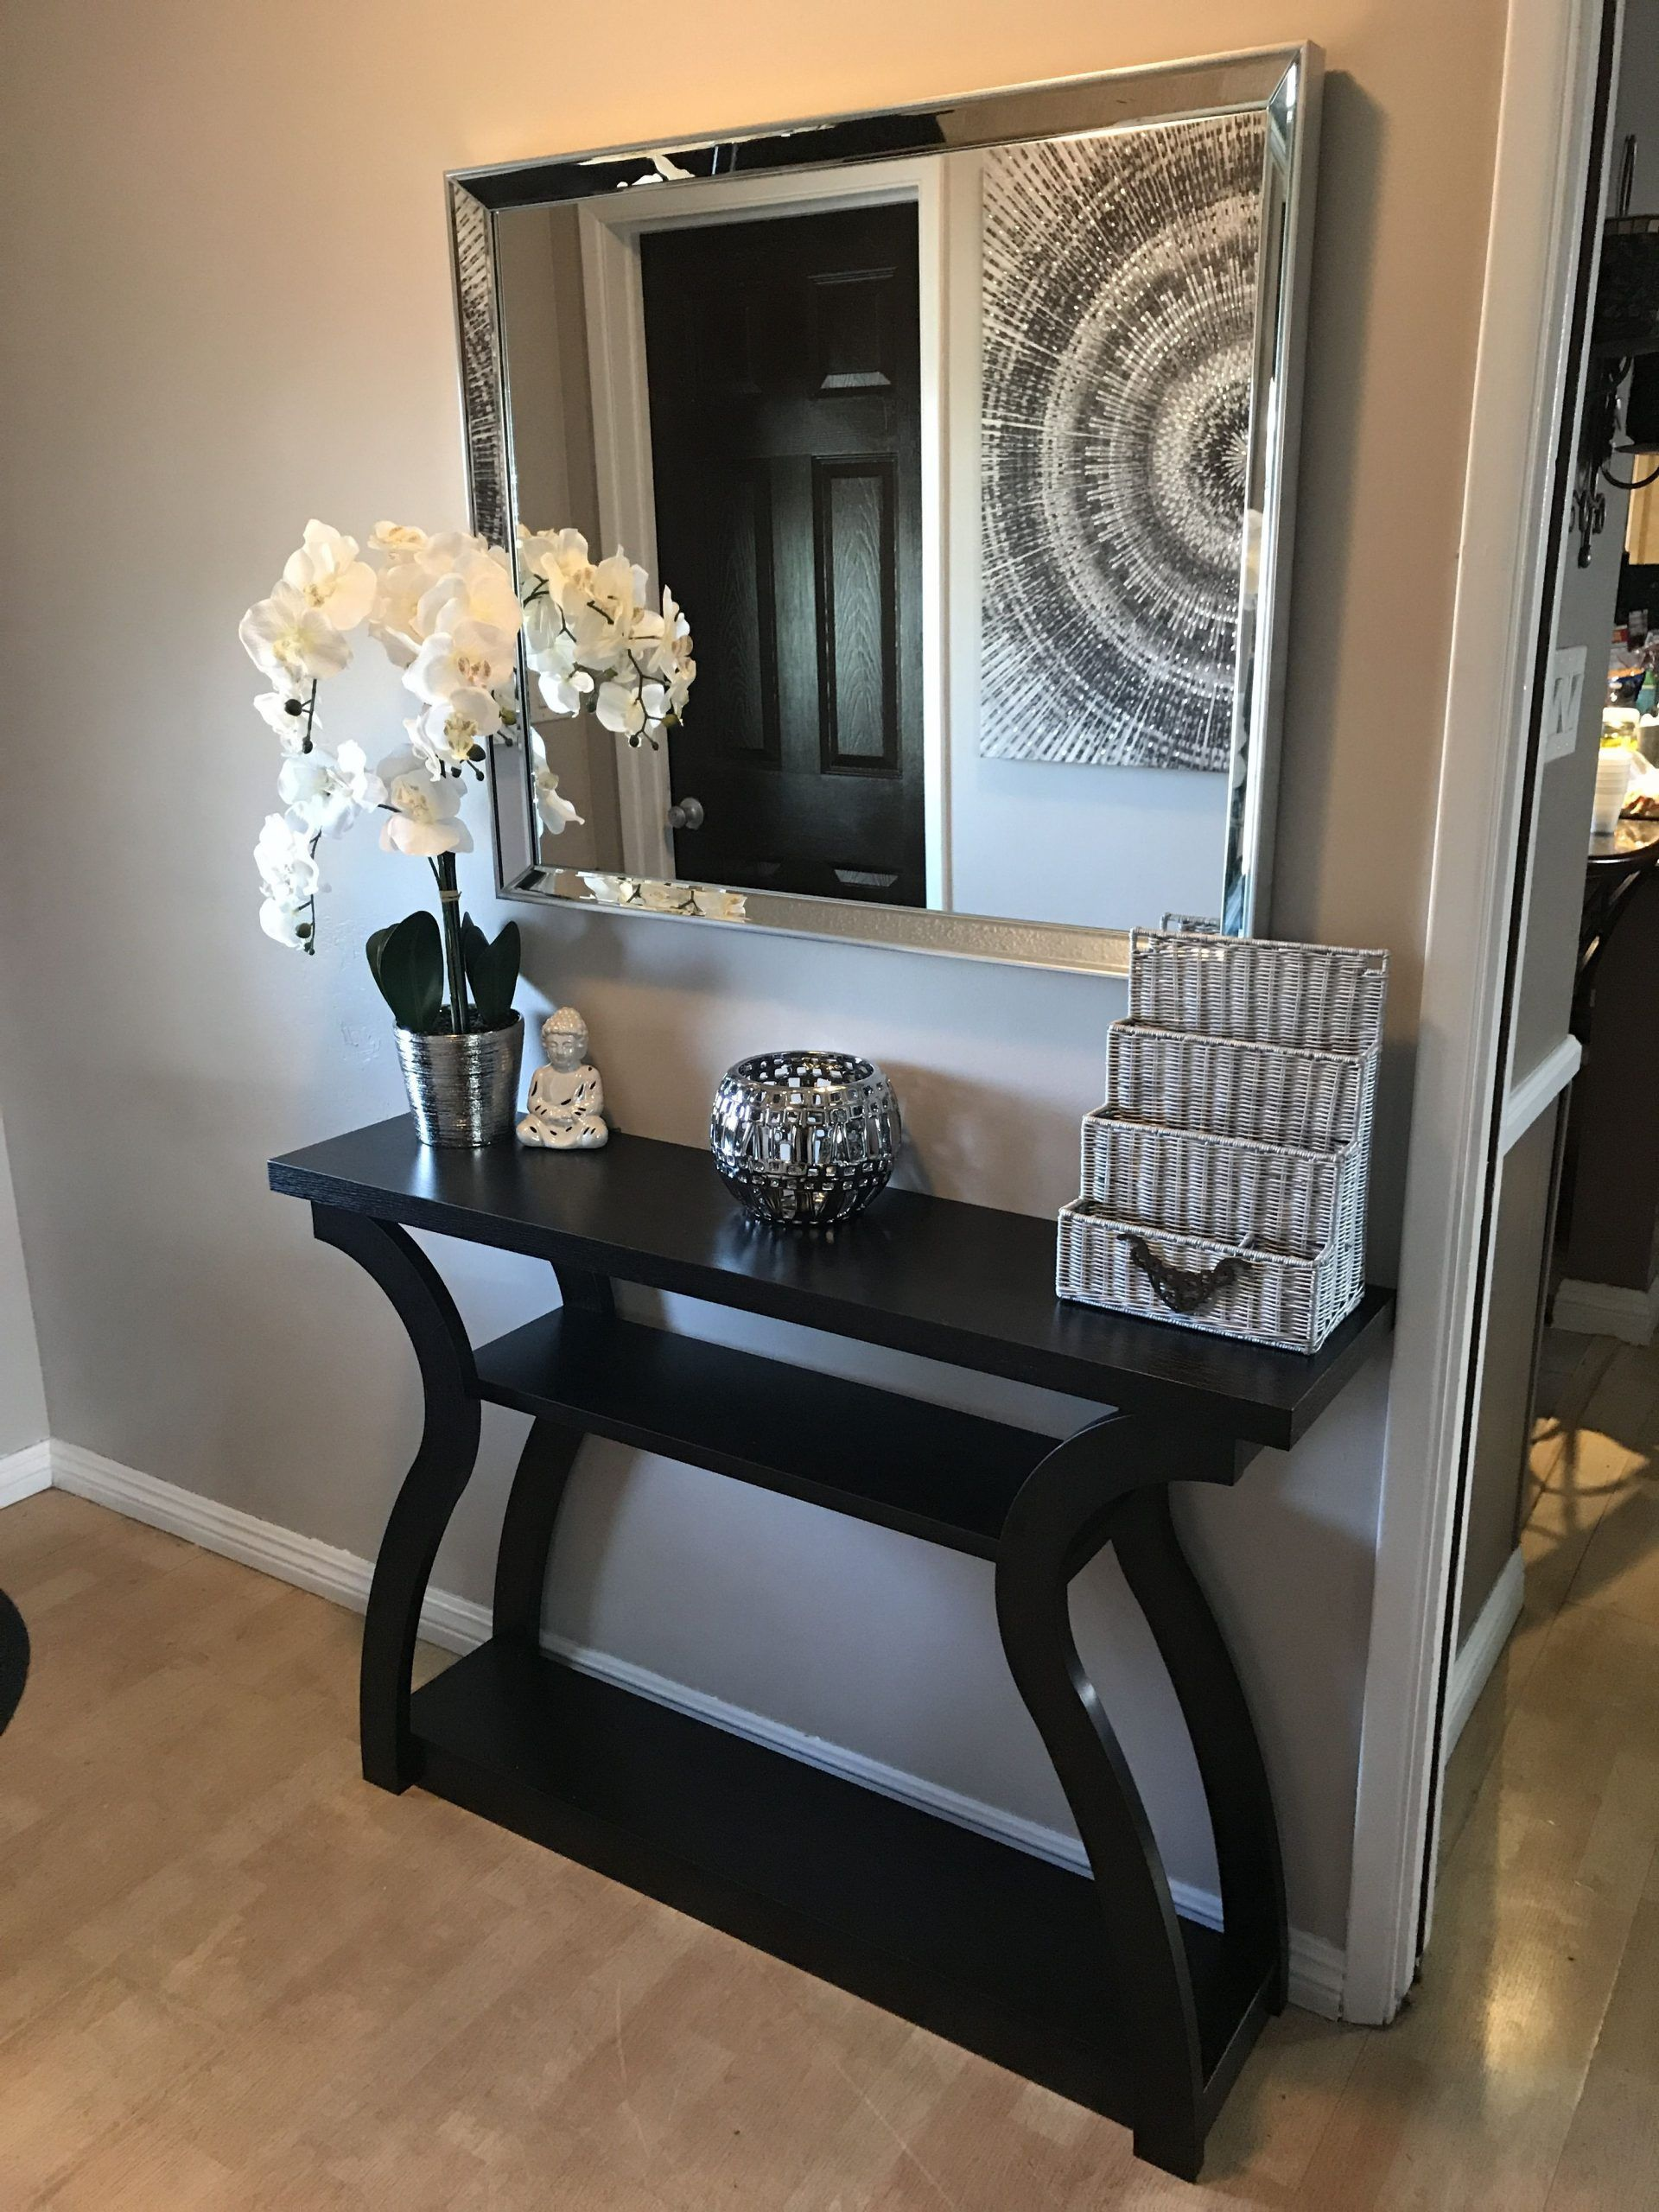 Dining Room Console Table Decor Console Table Entry Way Decor In 2020 Living Room Decor Apartment Living Room Decor Apartment Decor